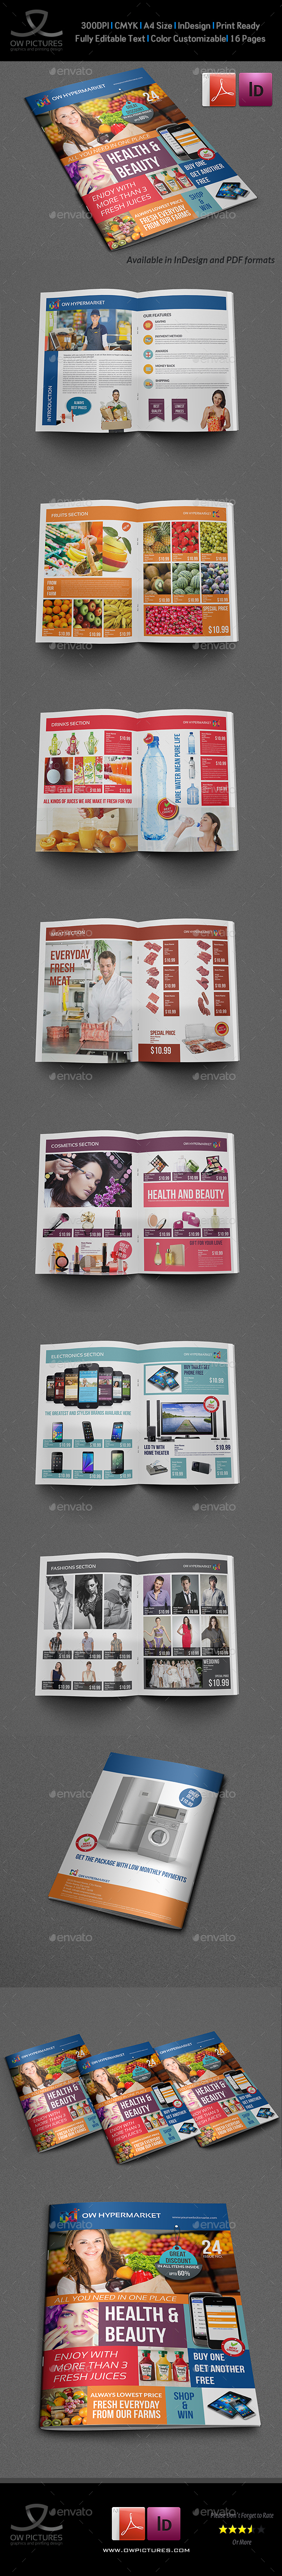 Supermarket Products Catalog Brochure Template By OWPictures - Product brochure templates